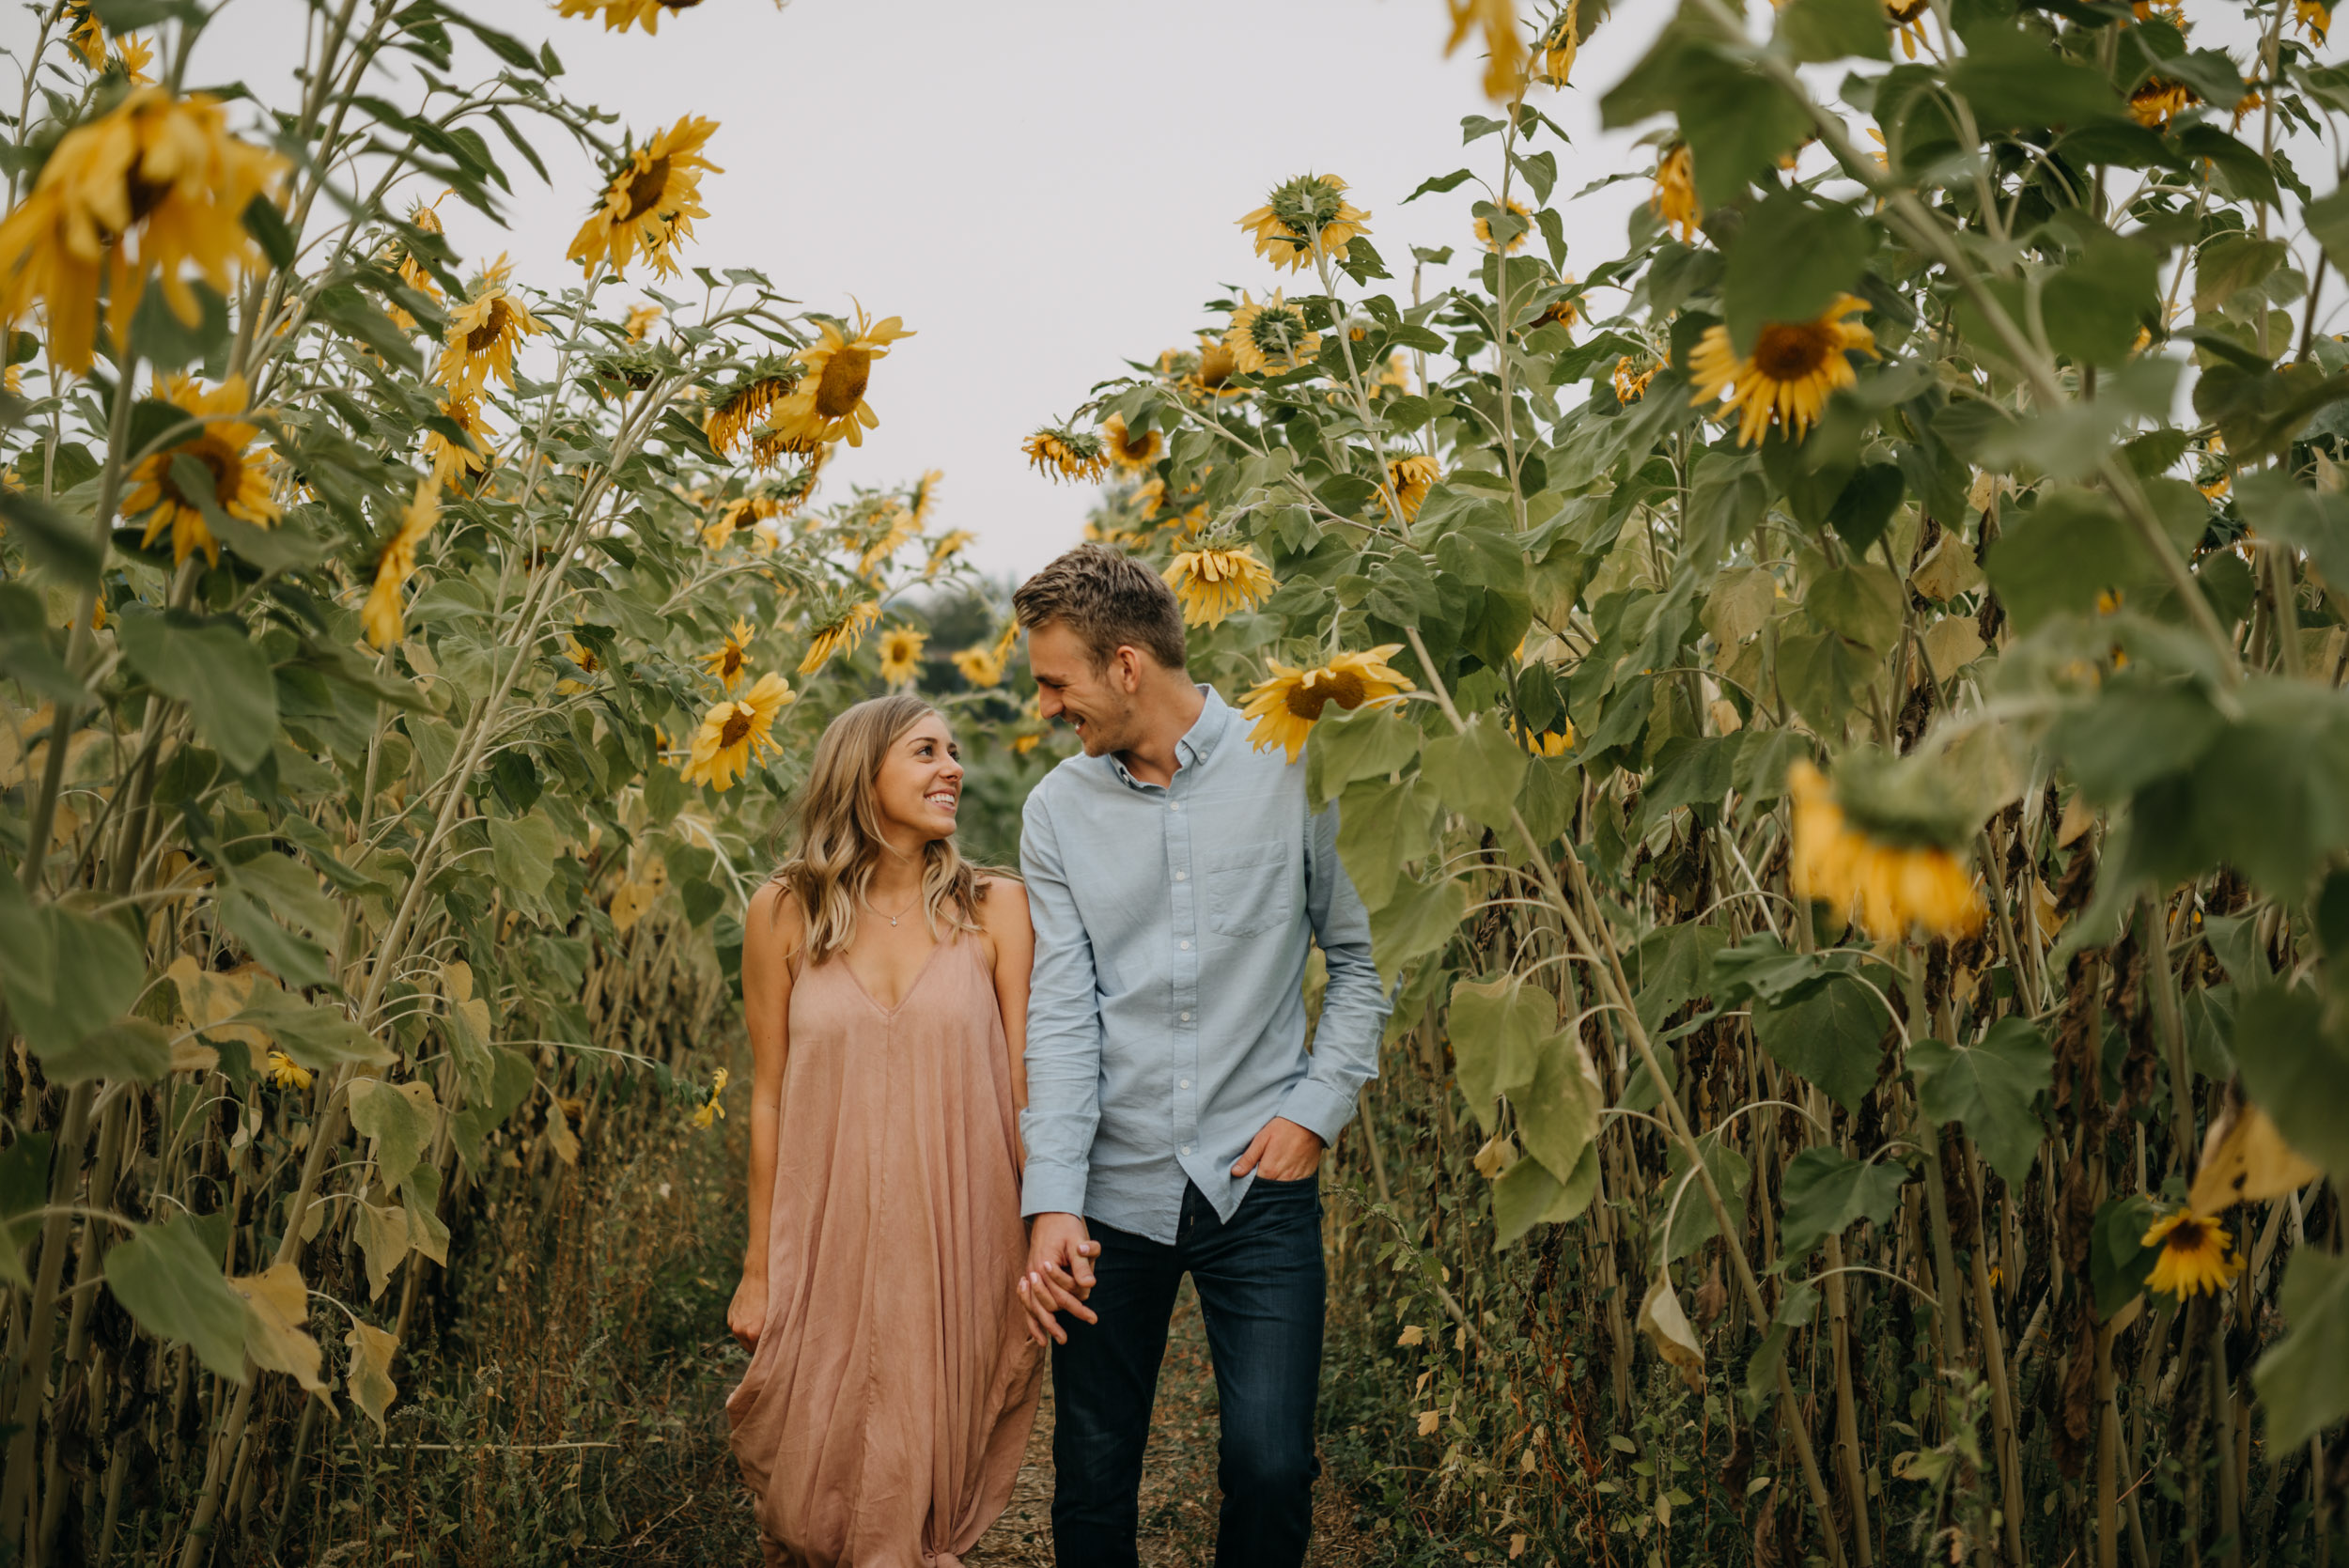 Sauvie-Island-Oregon-Sunflower-Portland-Engagement-3966.jpg